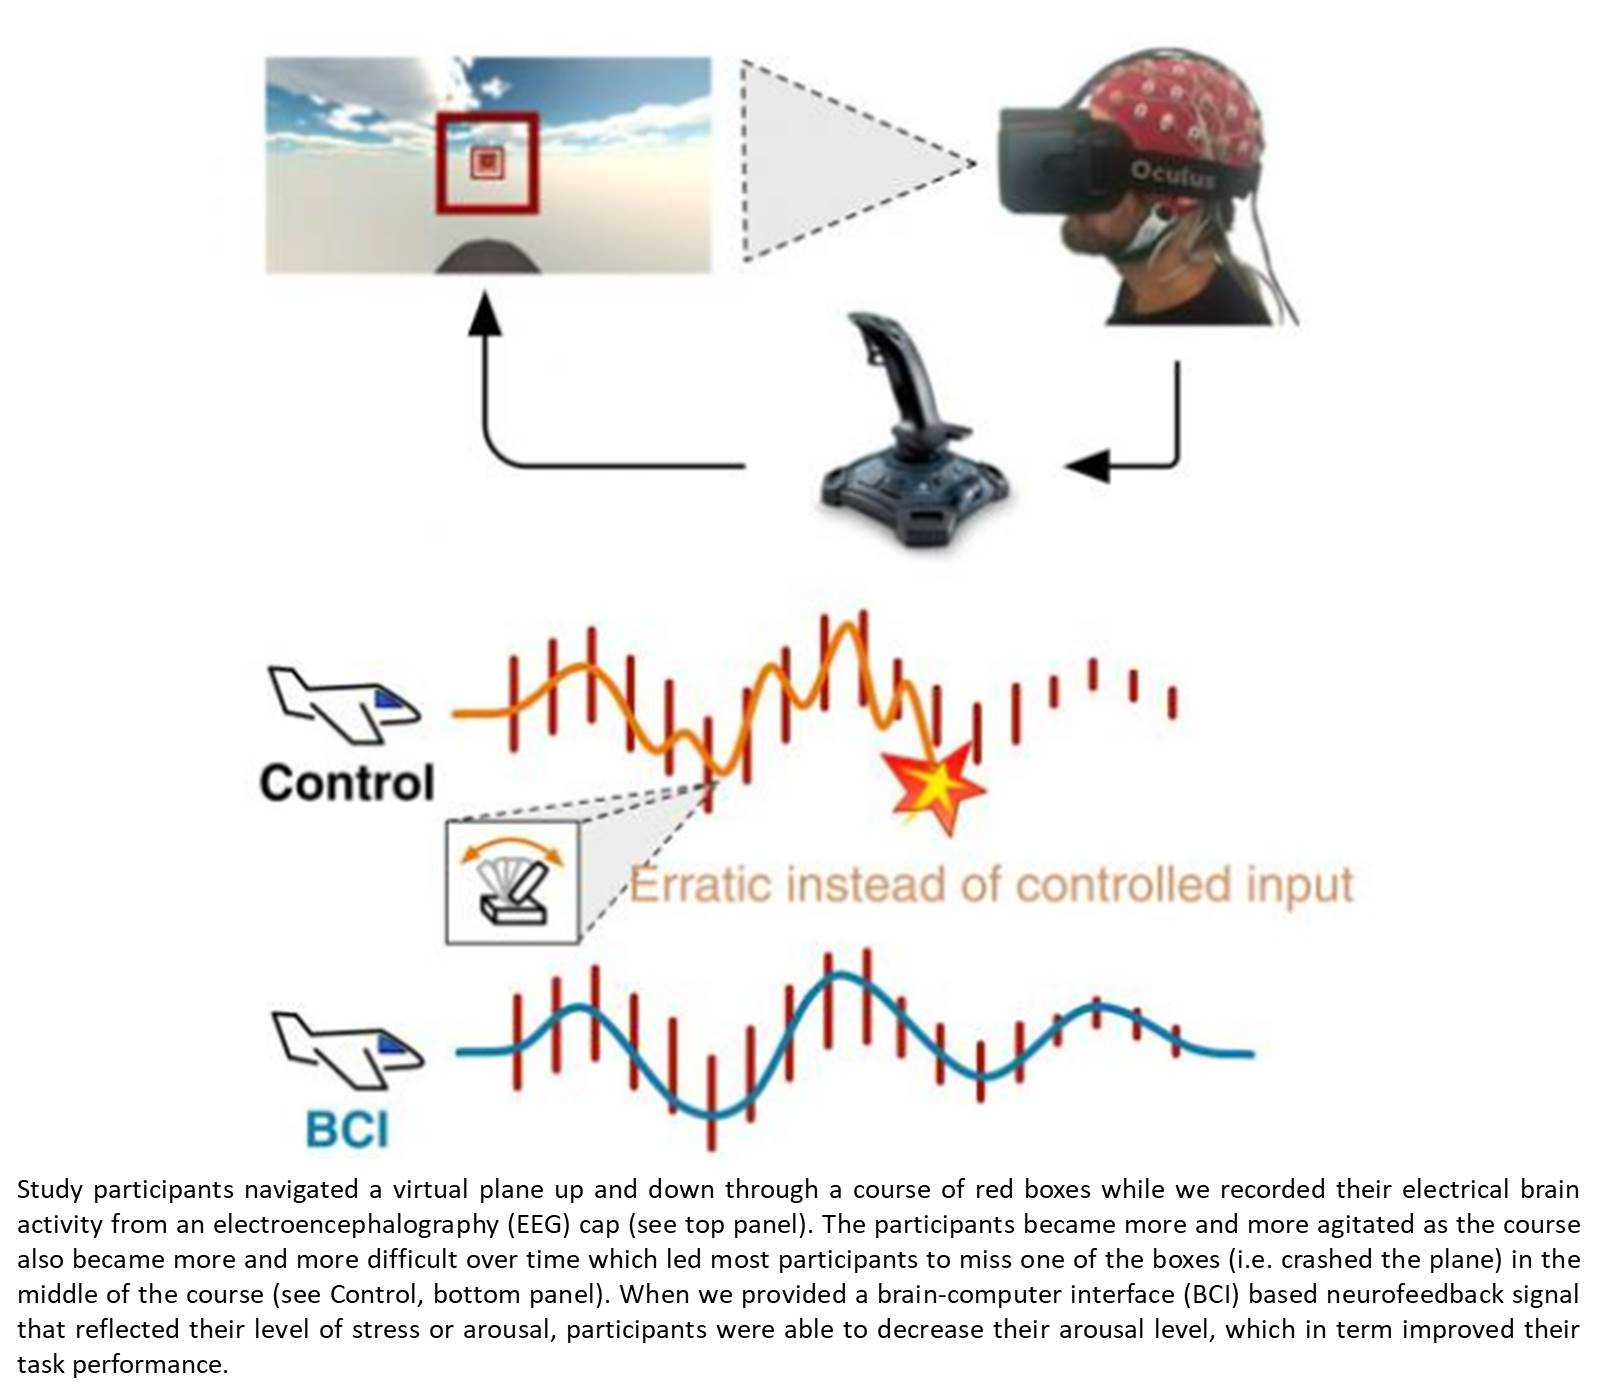 A brain-computer interface (BCI) based neurofeedback to modify an individual's arousal state